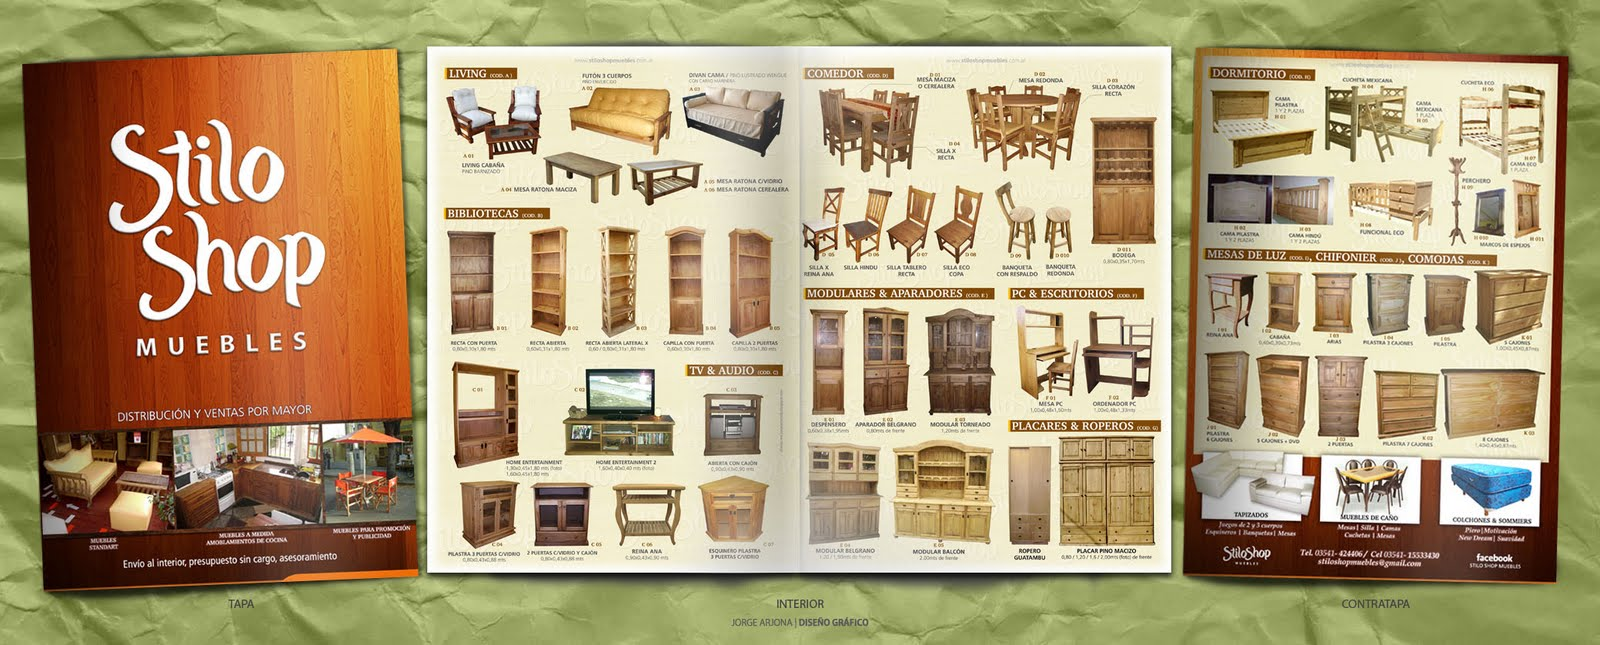 Jorge arjona dise o catalogo stilo shop muebles 2010 2011 for Muebles por catalogo